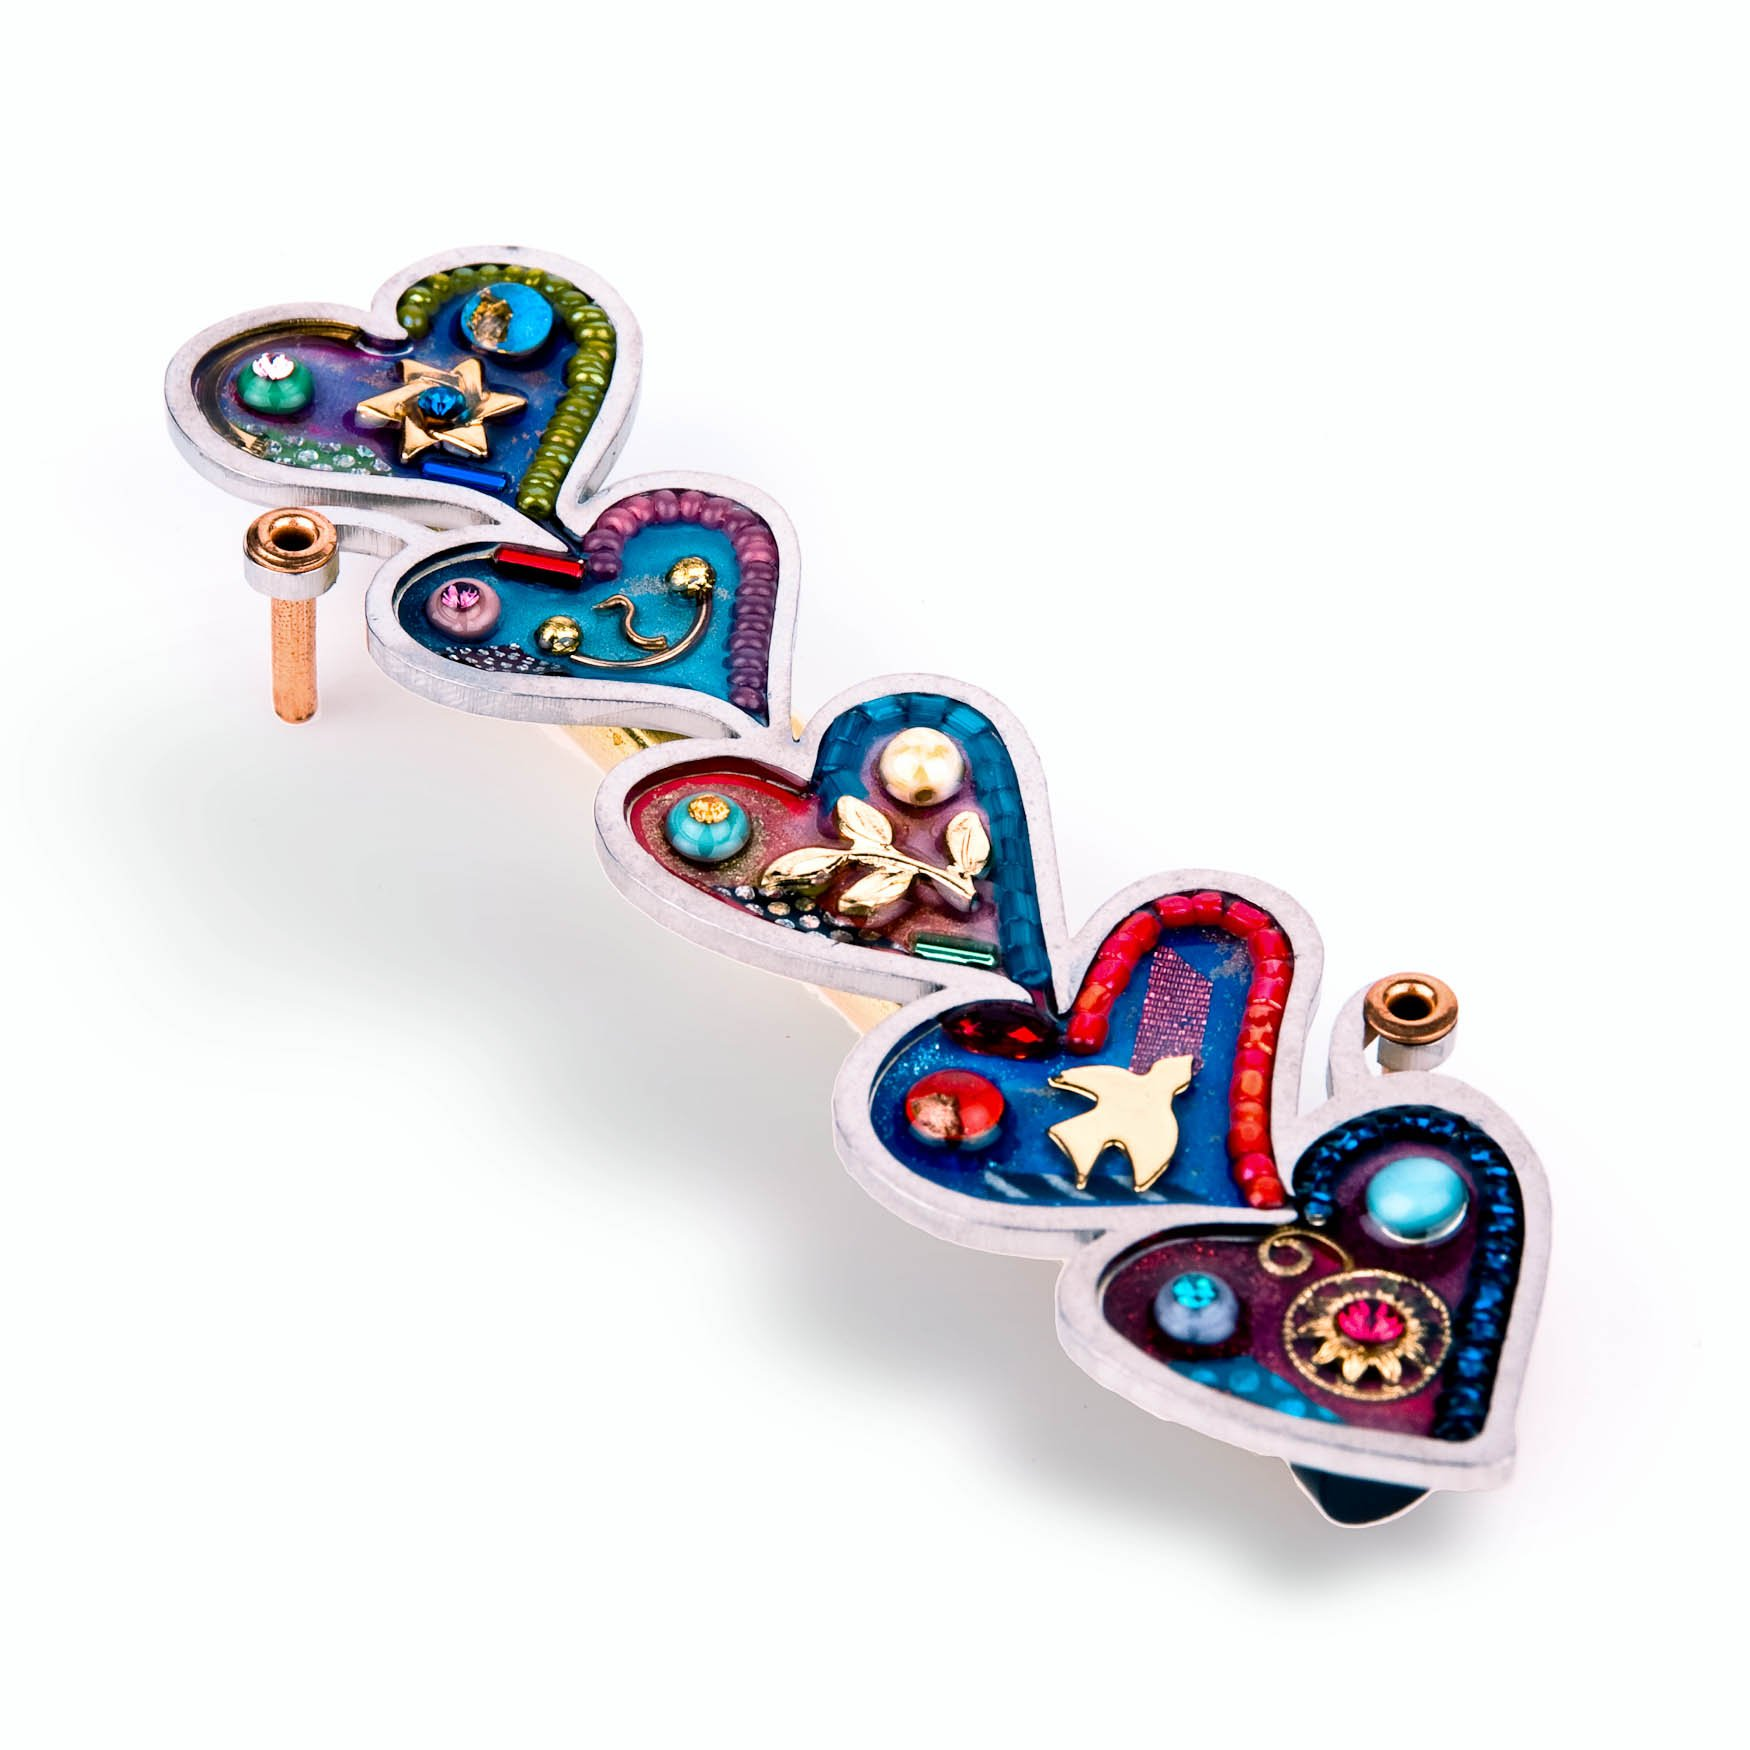 Seeka Tower of Hearts Mezuzah Curated and sold by The Artazia Collection M0952